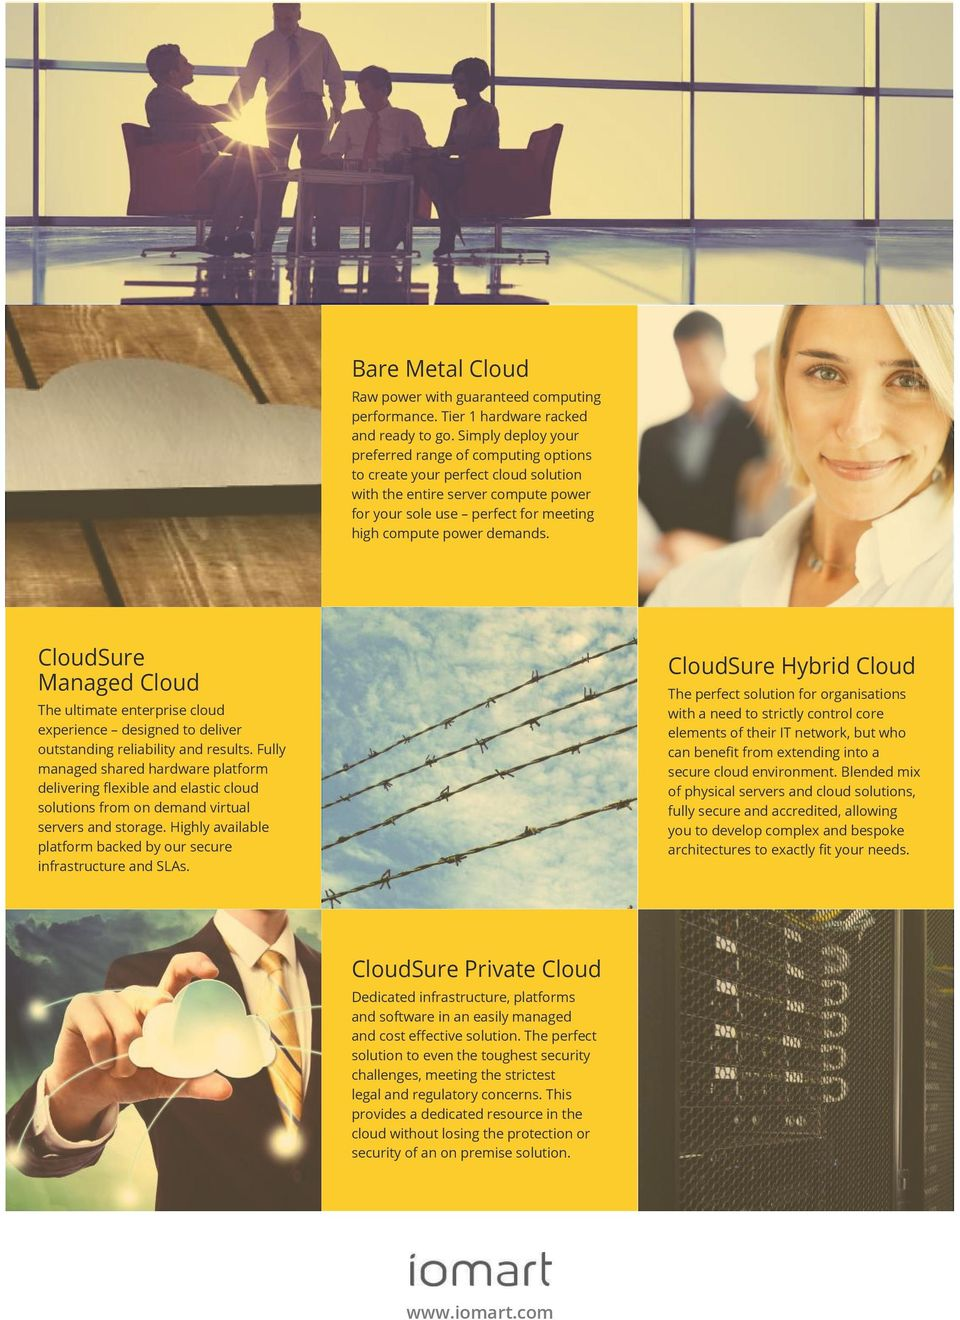 CloudSure Managed Cloud The ultimate enterprise cloud experience designed to deliver outstanding reliability and results.